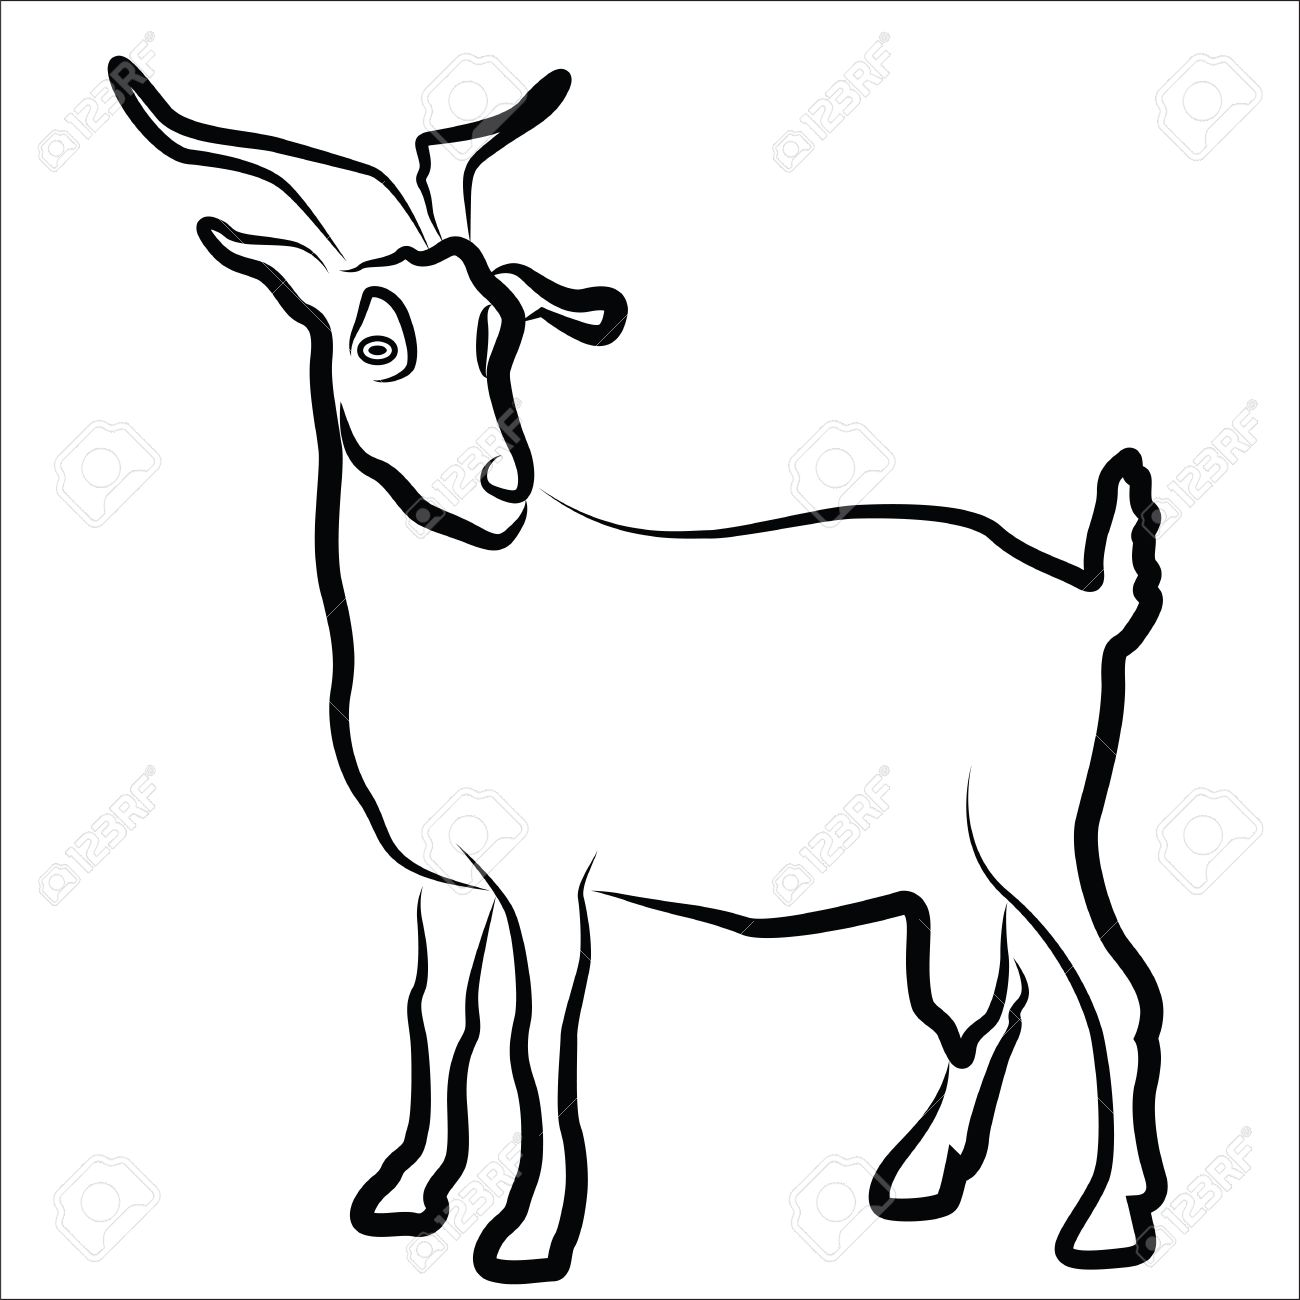 Goat Silhouette Isolated On White Royalty Free Cliparts, Vectors.